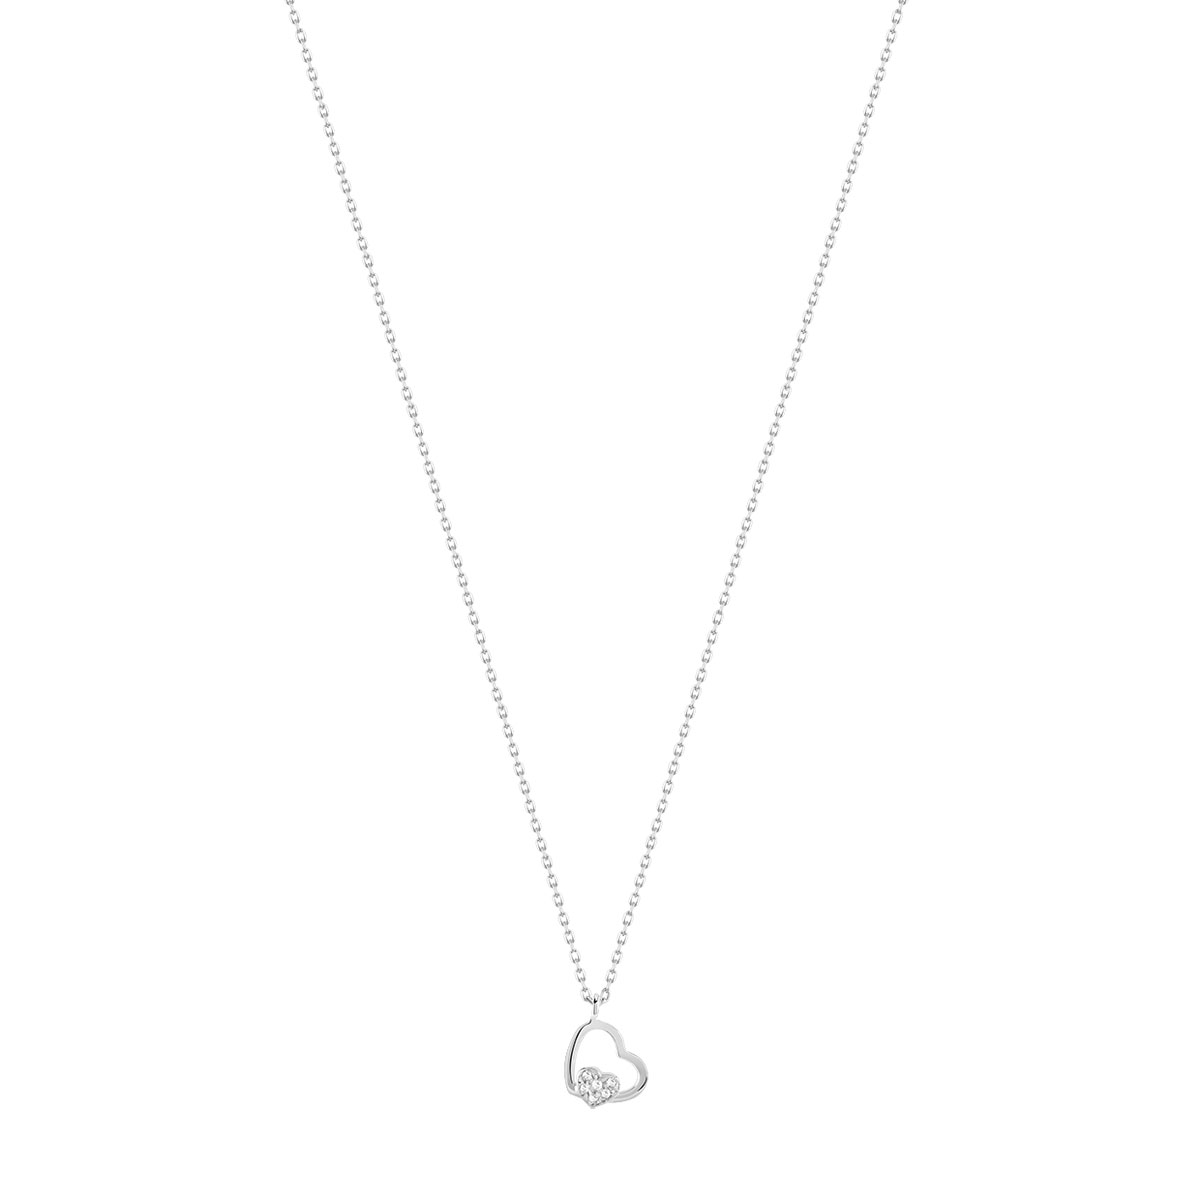 Collier or 375 blanc zirconia - vue V1